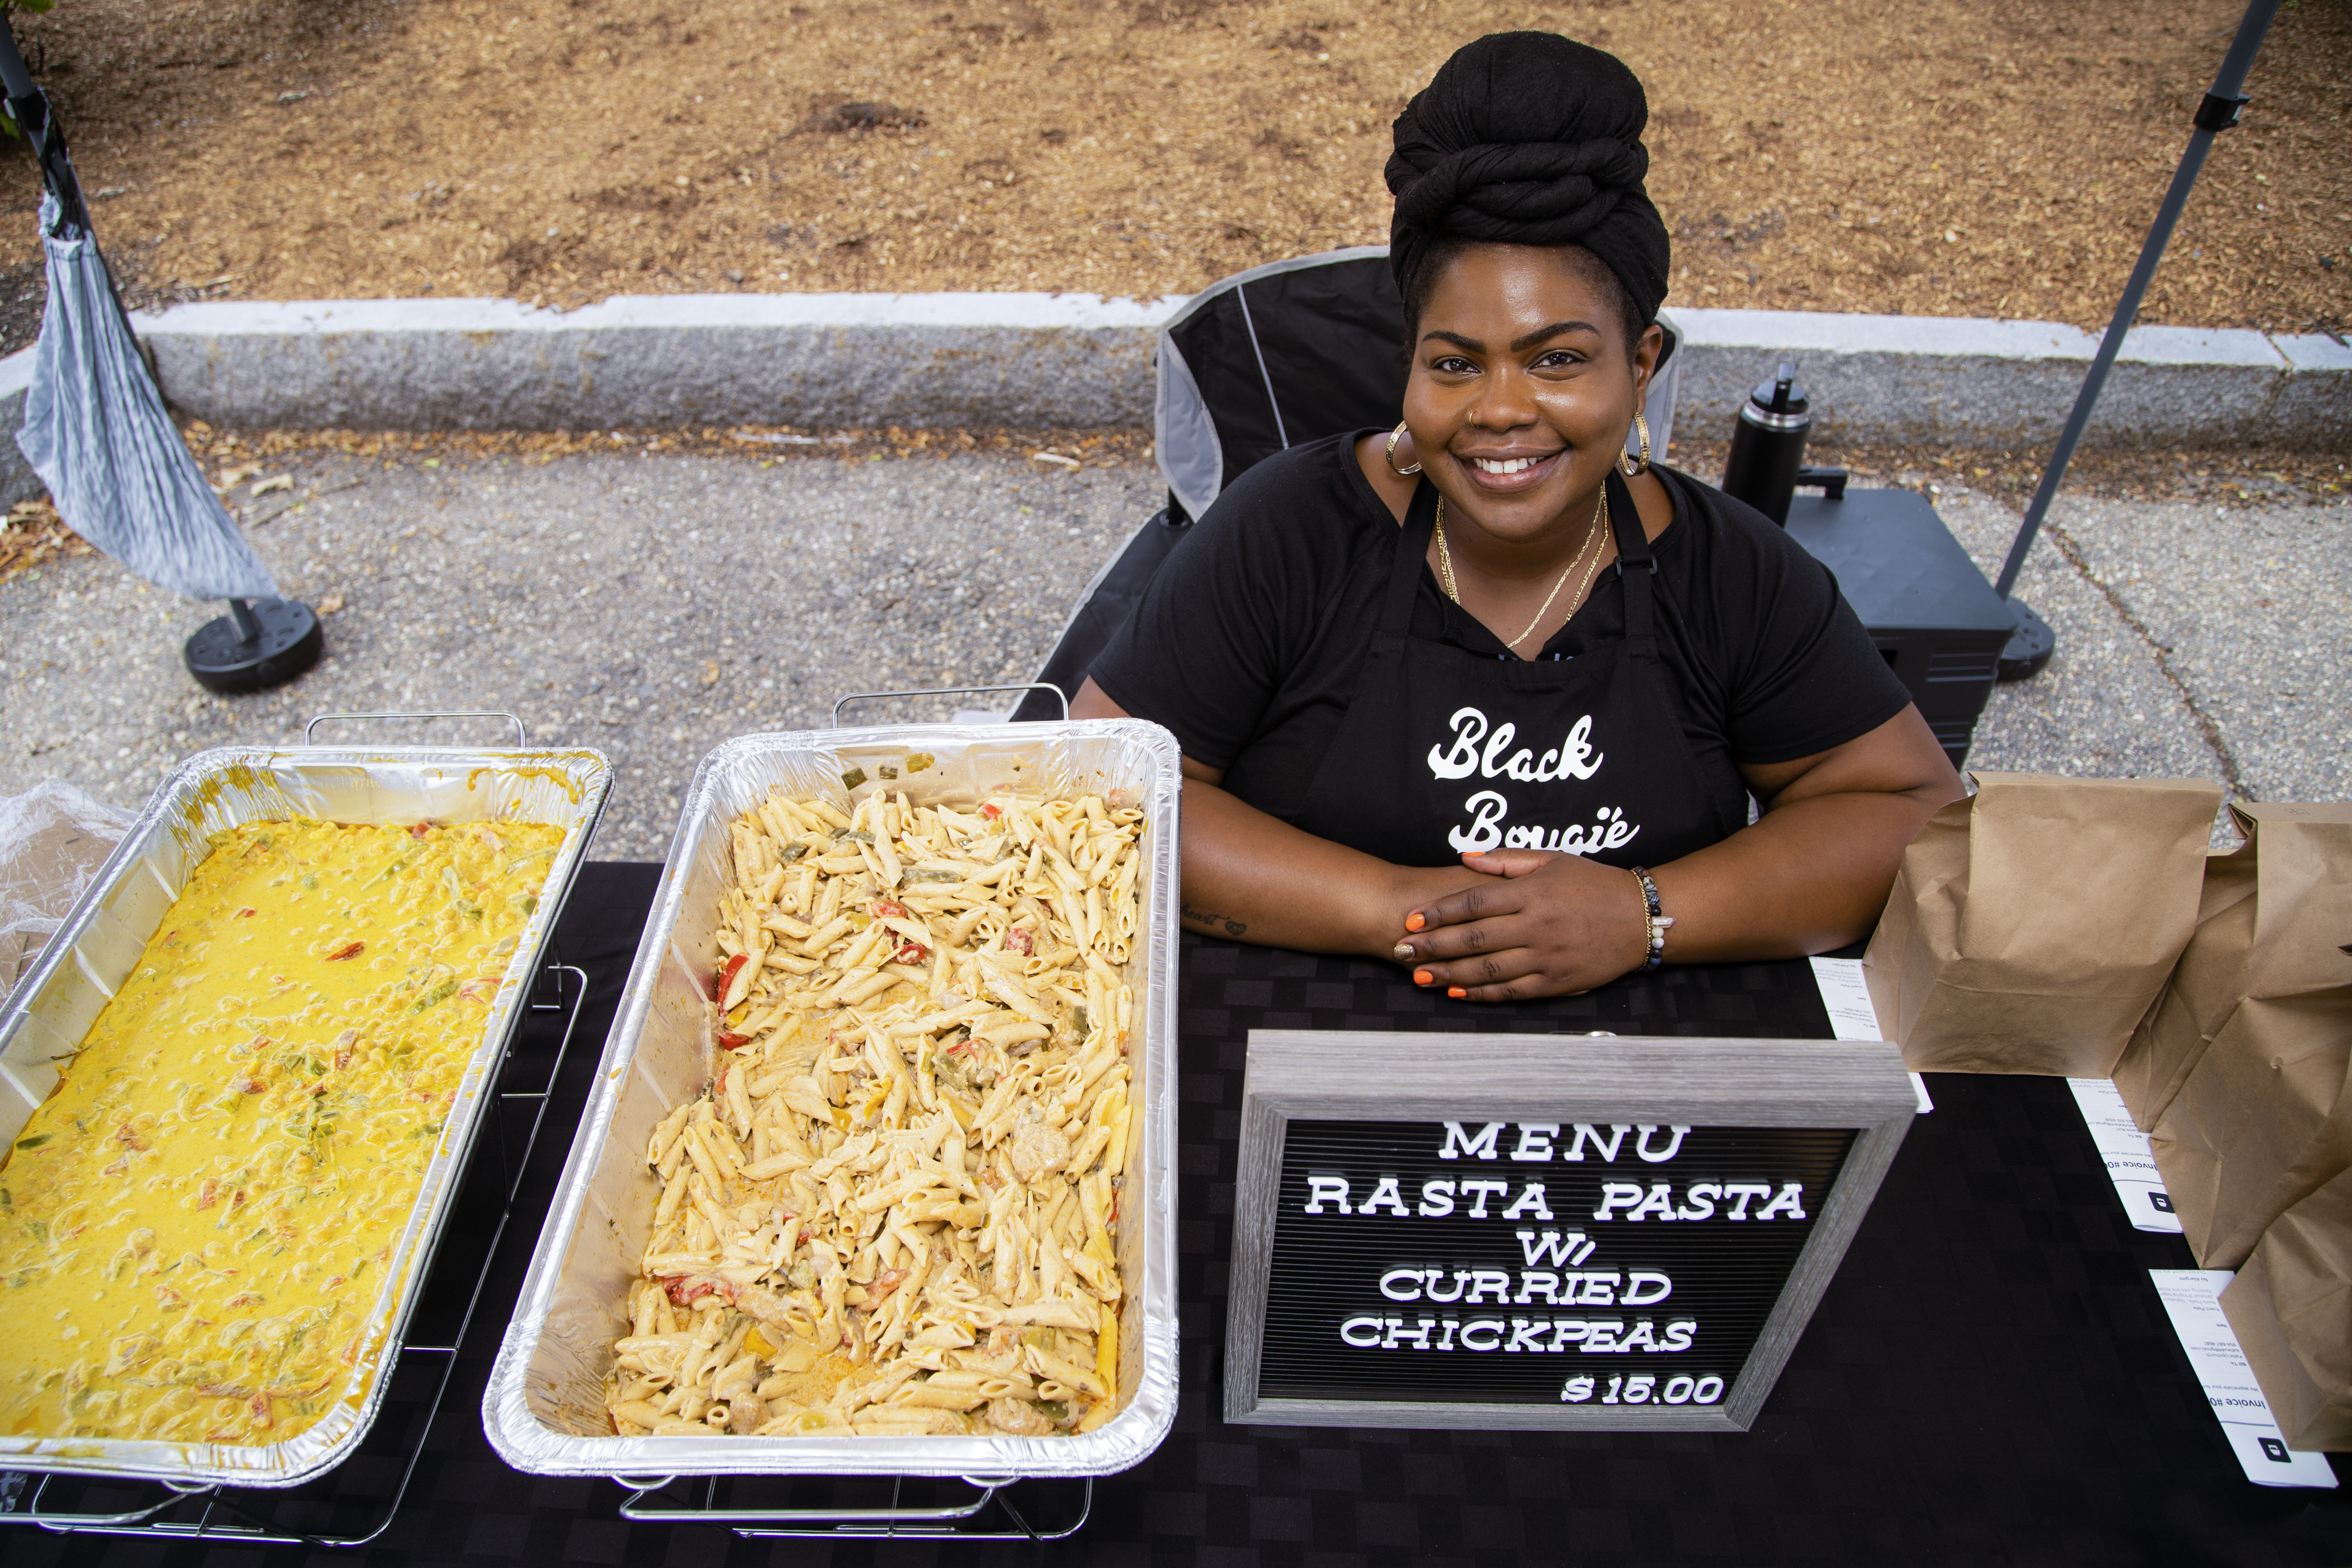 Kedian Dixon of Black Bougié & Vegán sits at her booth at a vegan food market in Dover, N.H., on Sunday.